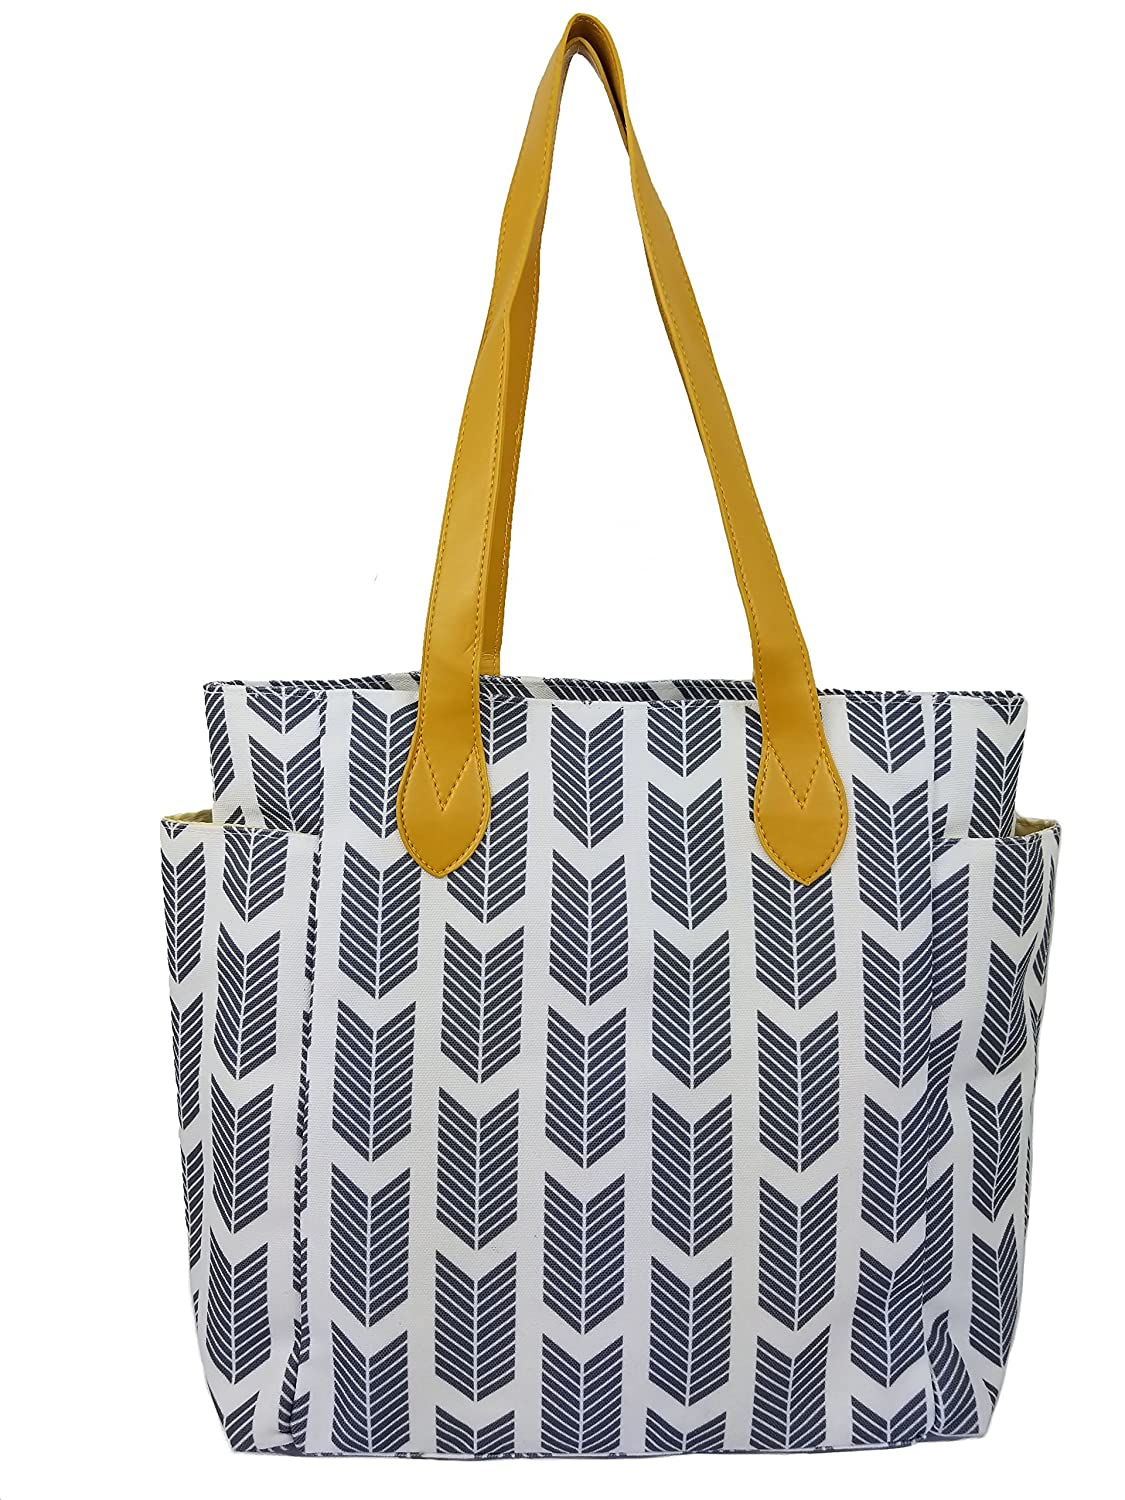 Beach Tote Bag With Arrow Print. This Top Handle Shoulder Handbag Is Perfect For Summer. Summer Sale! (Gray) by Amor Est Vitae